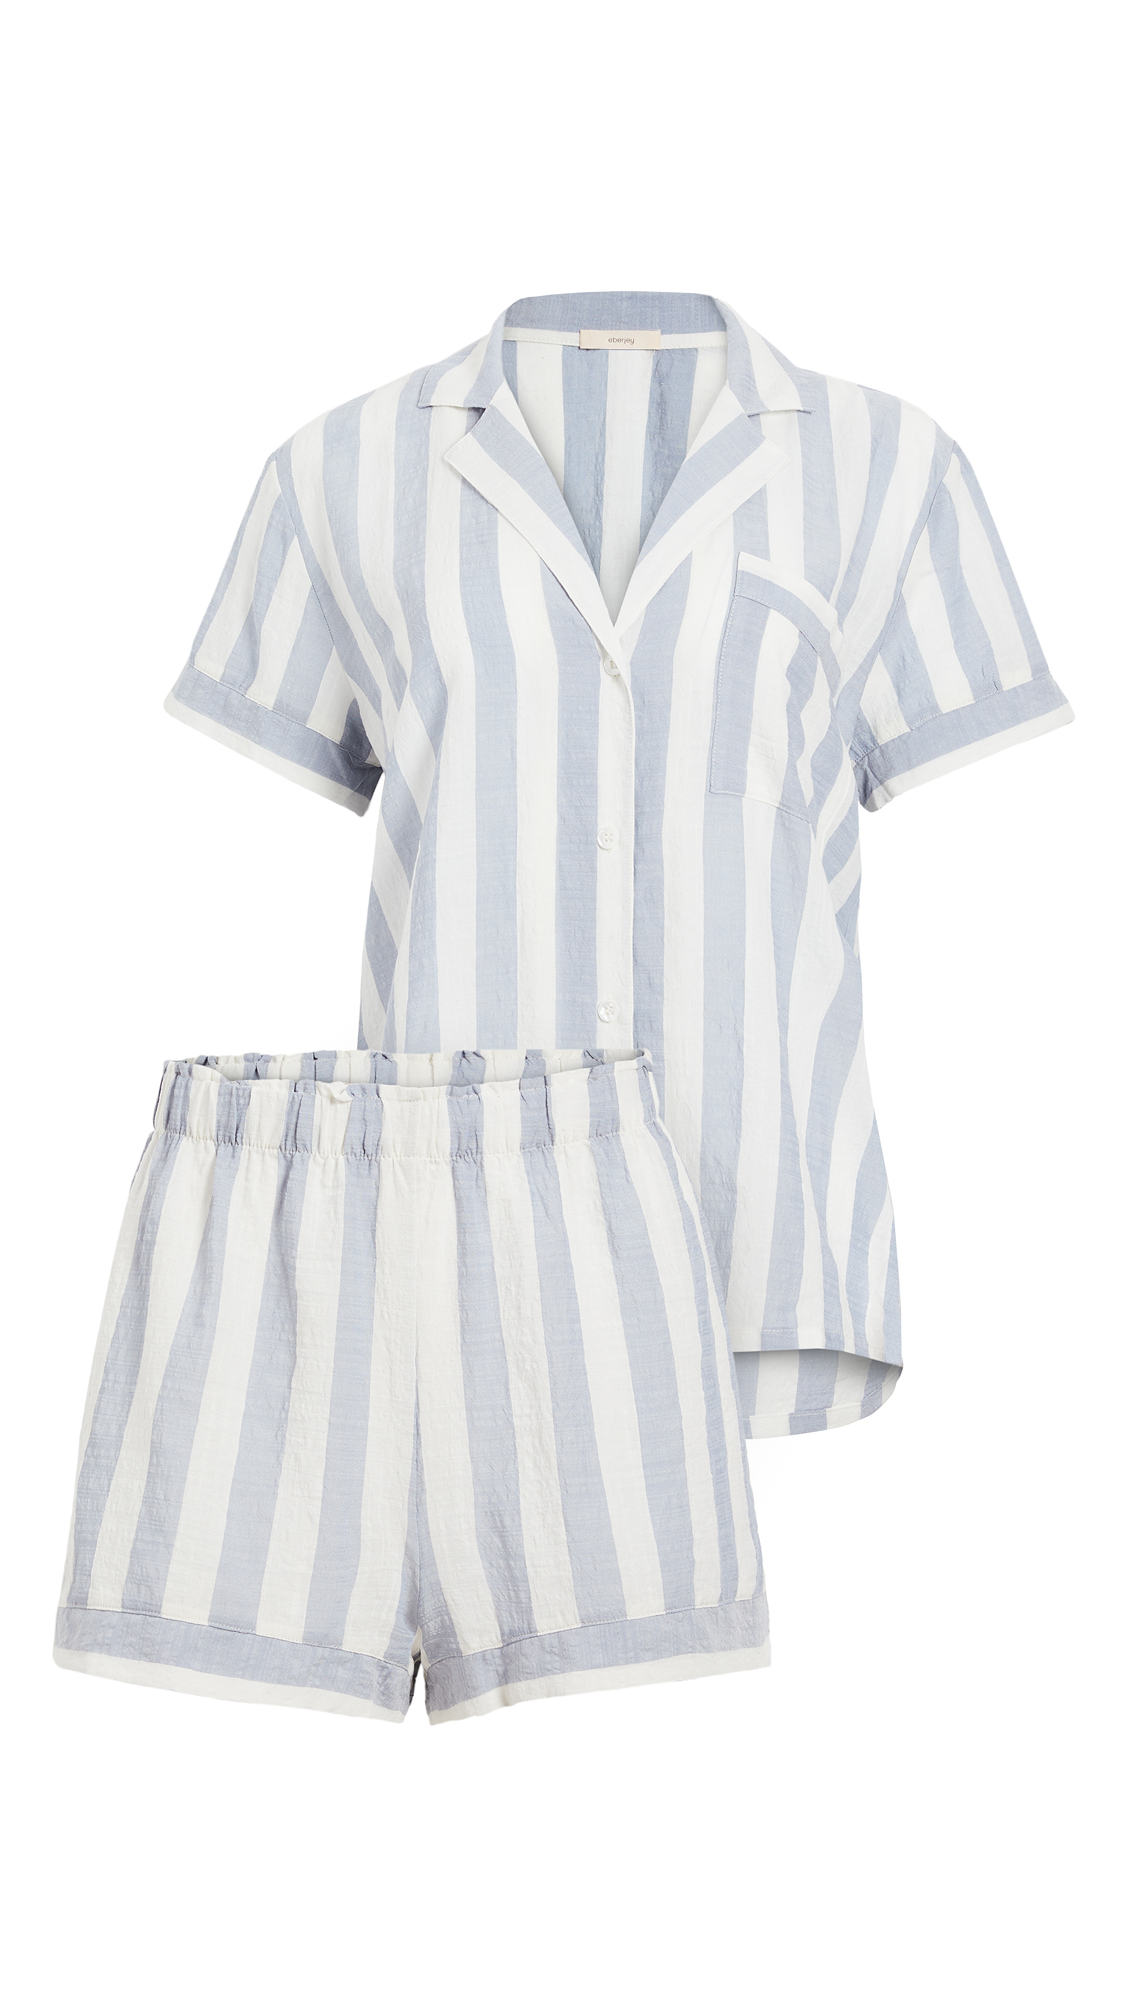 Eberjey Umbrella Stripes Woven Short PJ Set